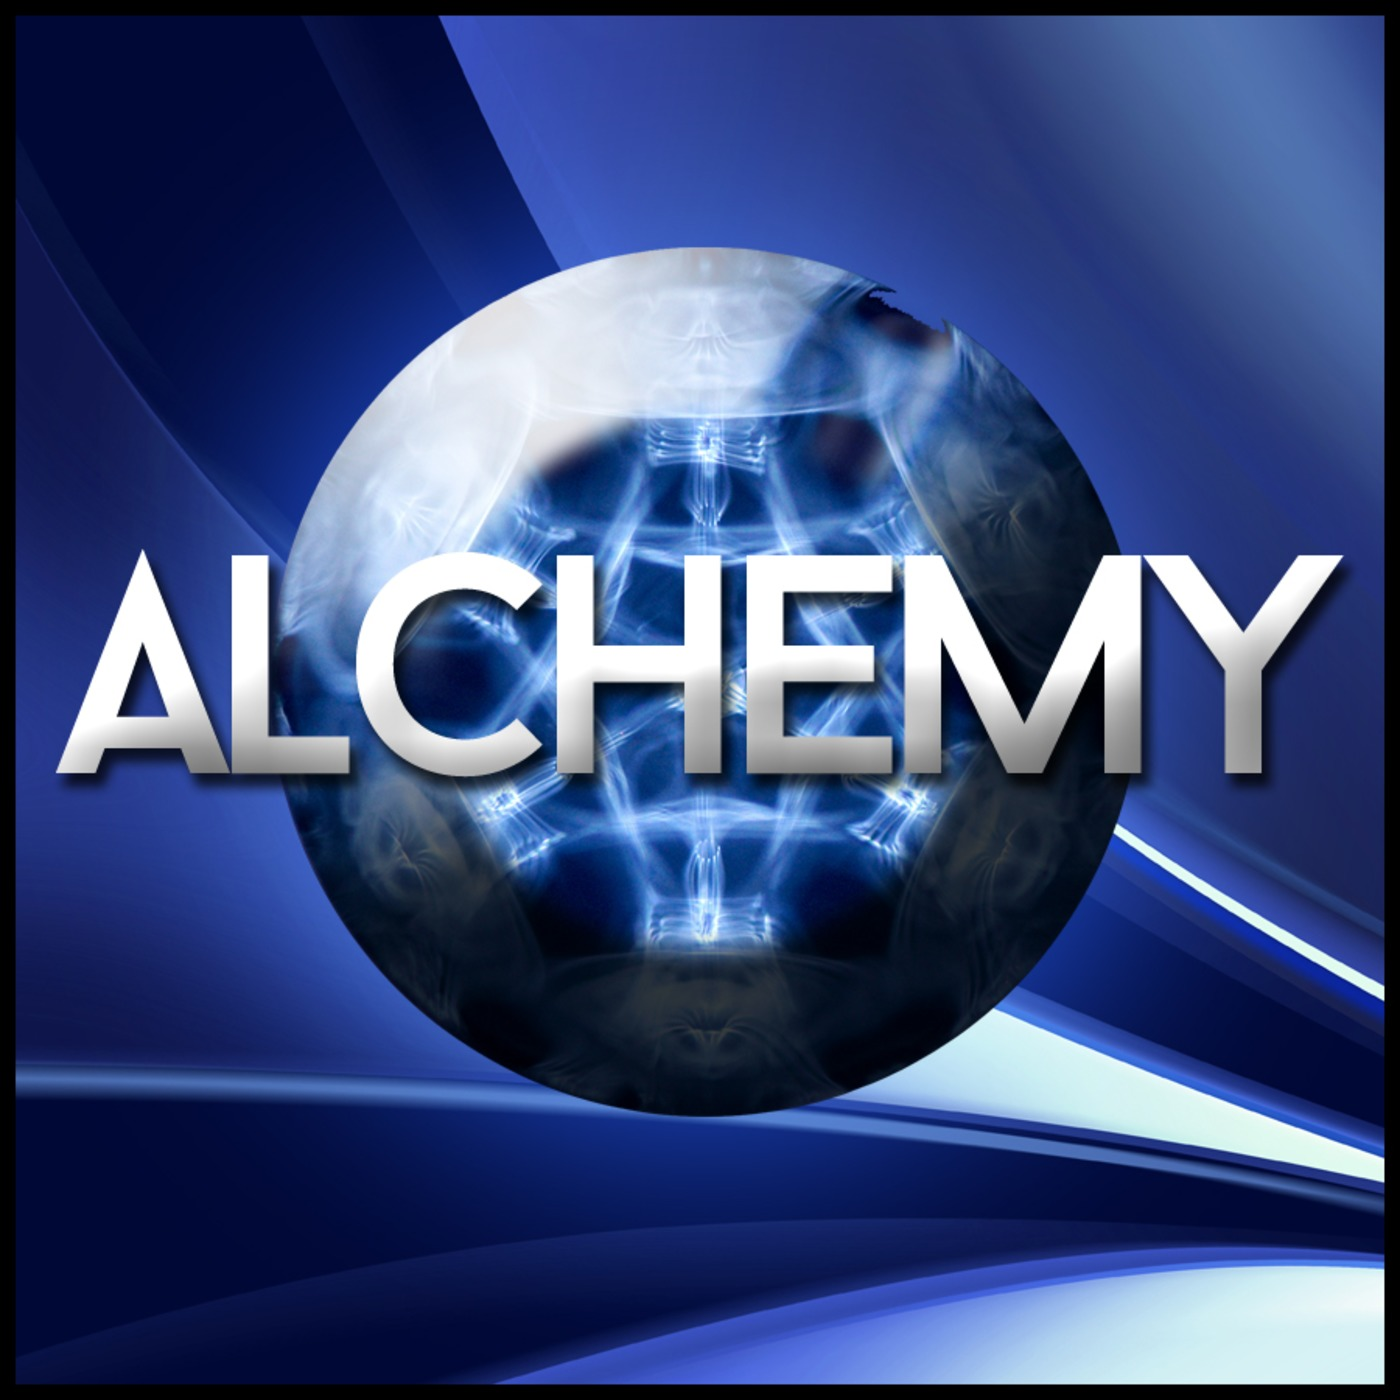 Alchemy with John Gibbons